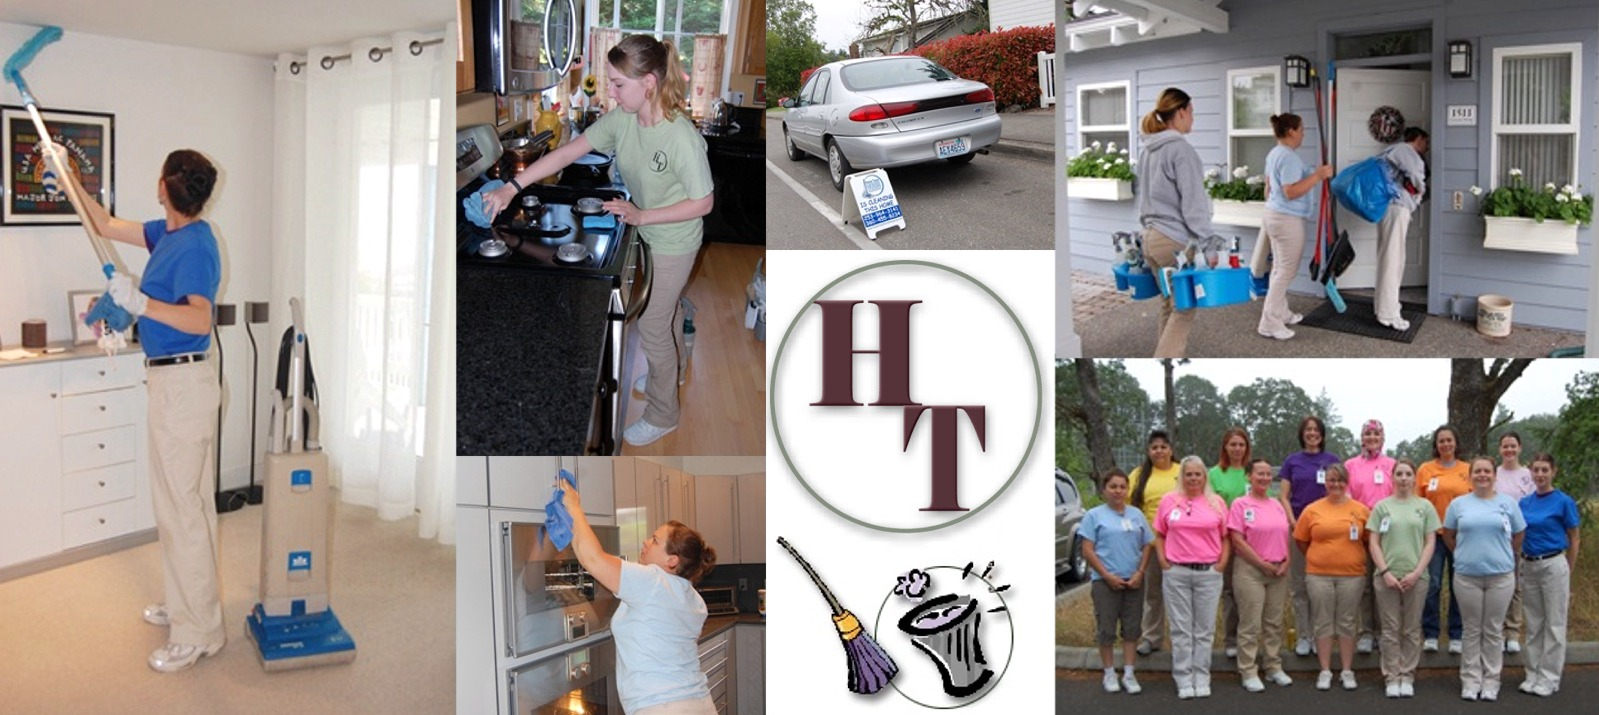 Home Town Housekeeping, providing house cleaning services and maid services for Lakewood, Lacey, Dupont and Olympia, WA